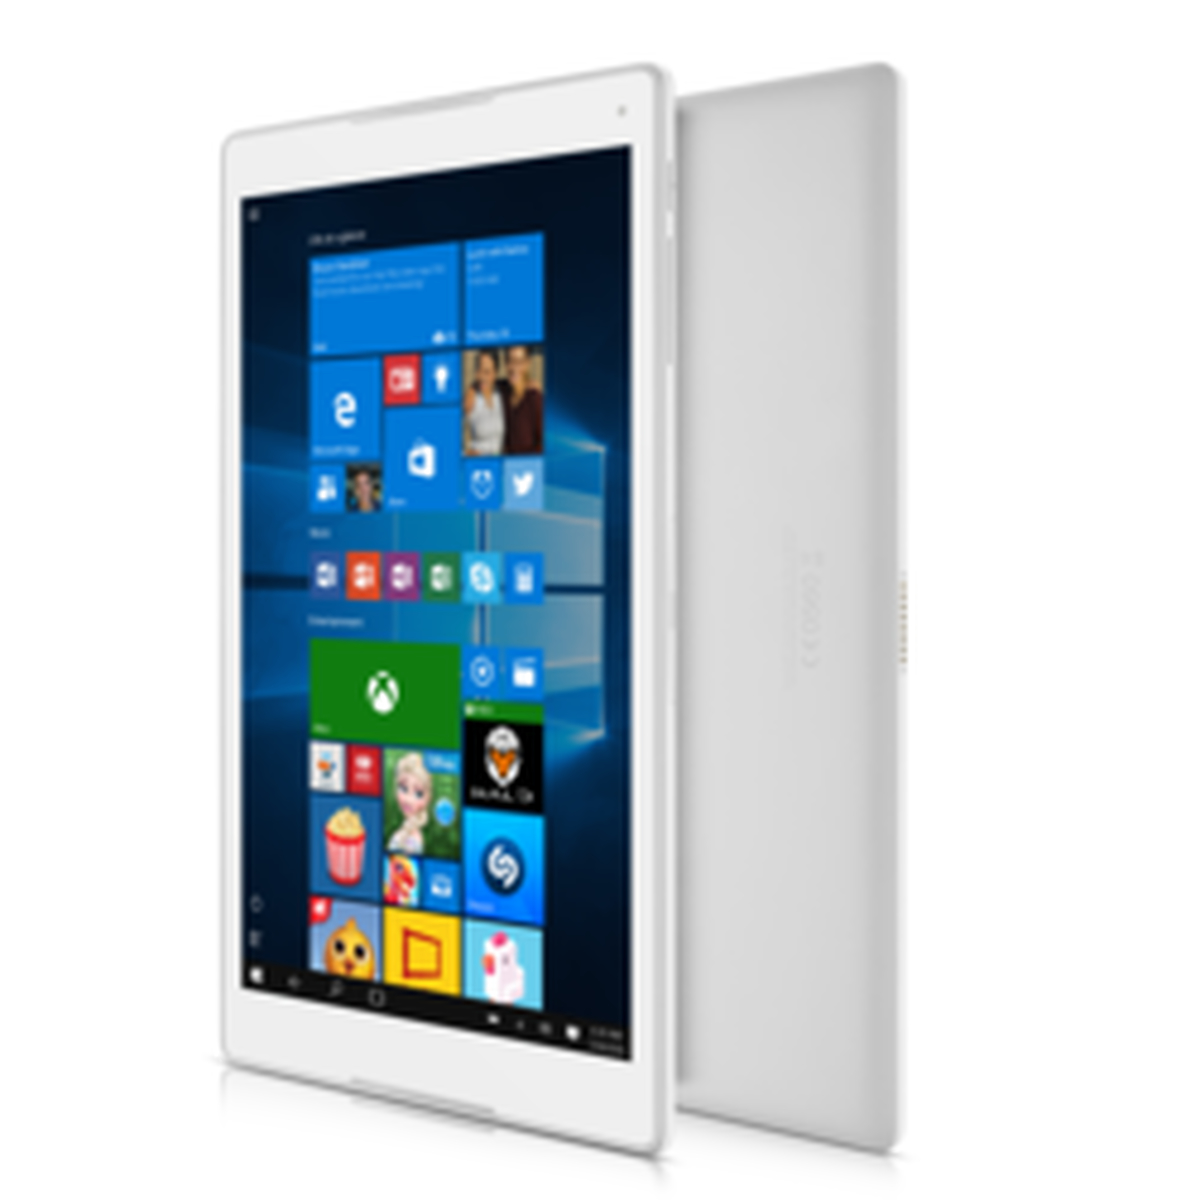 ALCATEL Plus 10 25,65 cm Windows 10 Tablet LTE wei� #wieneu